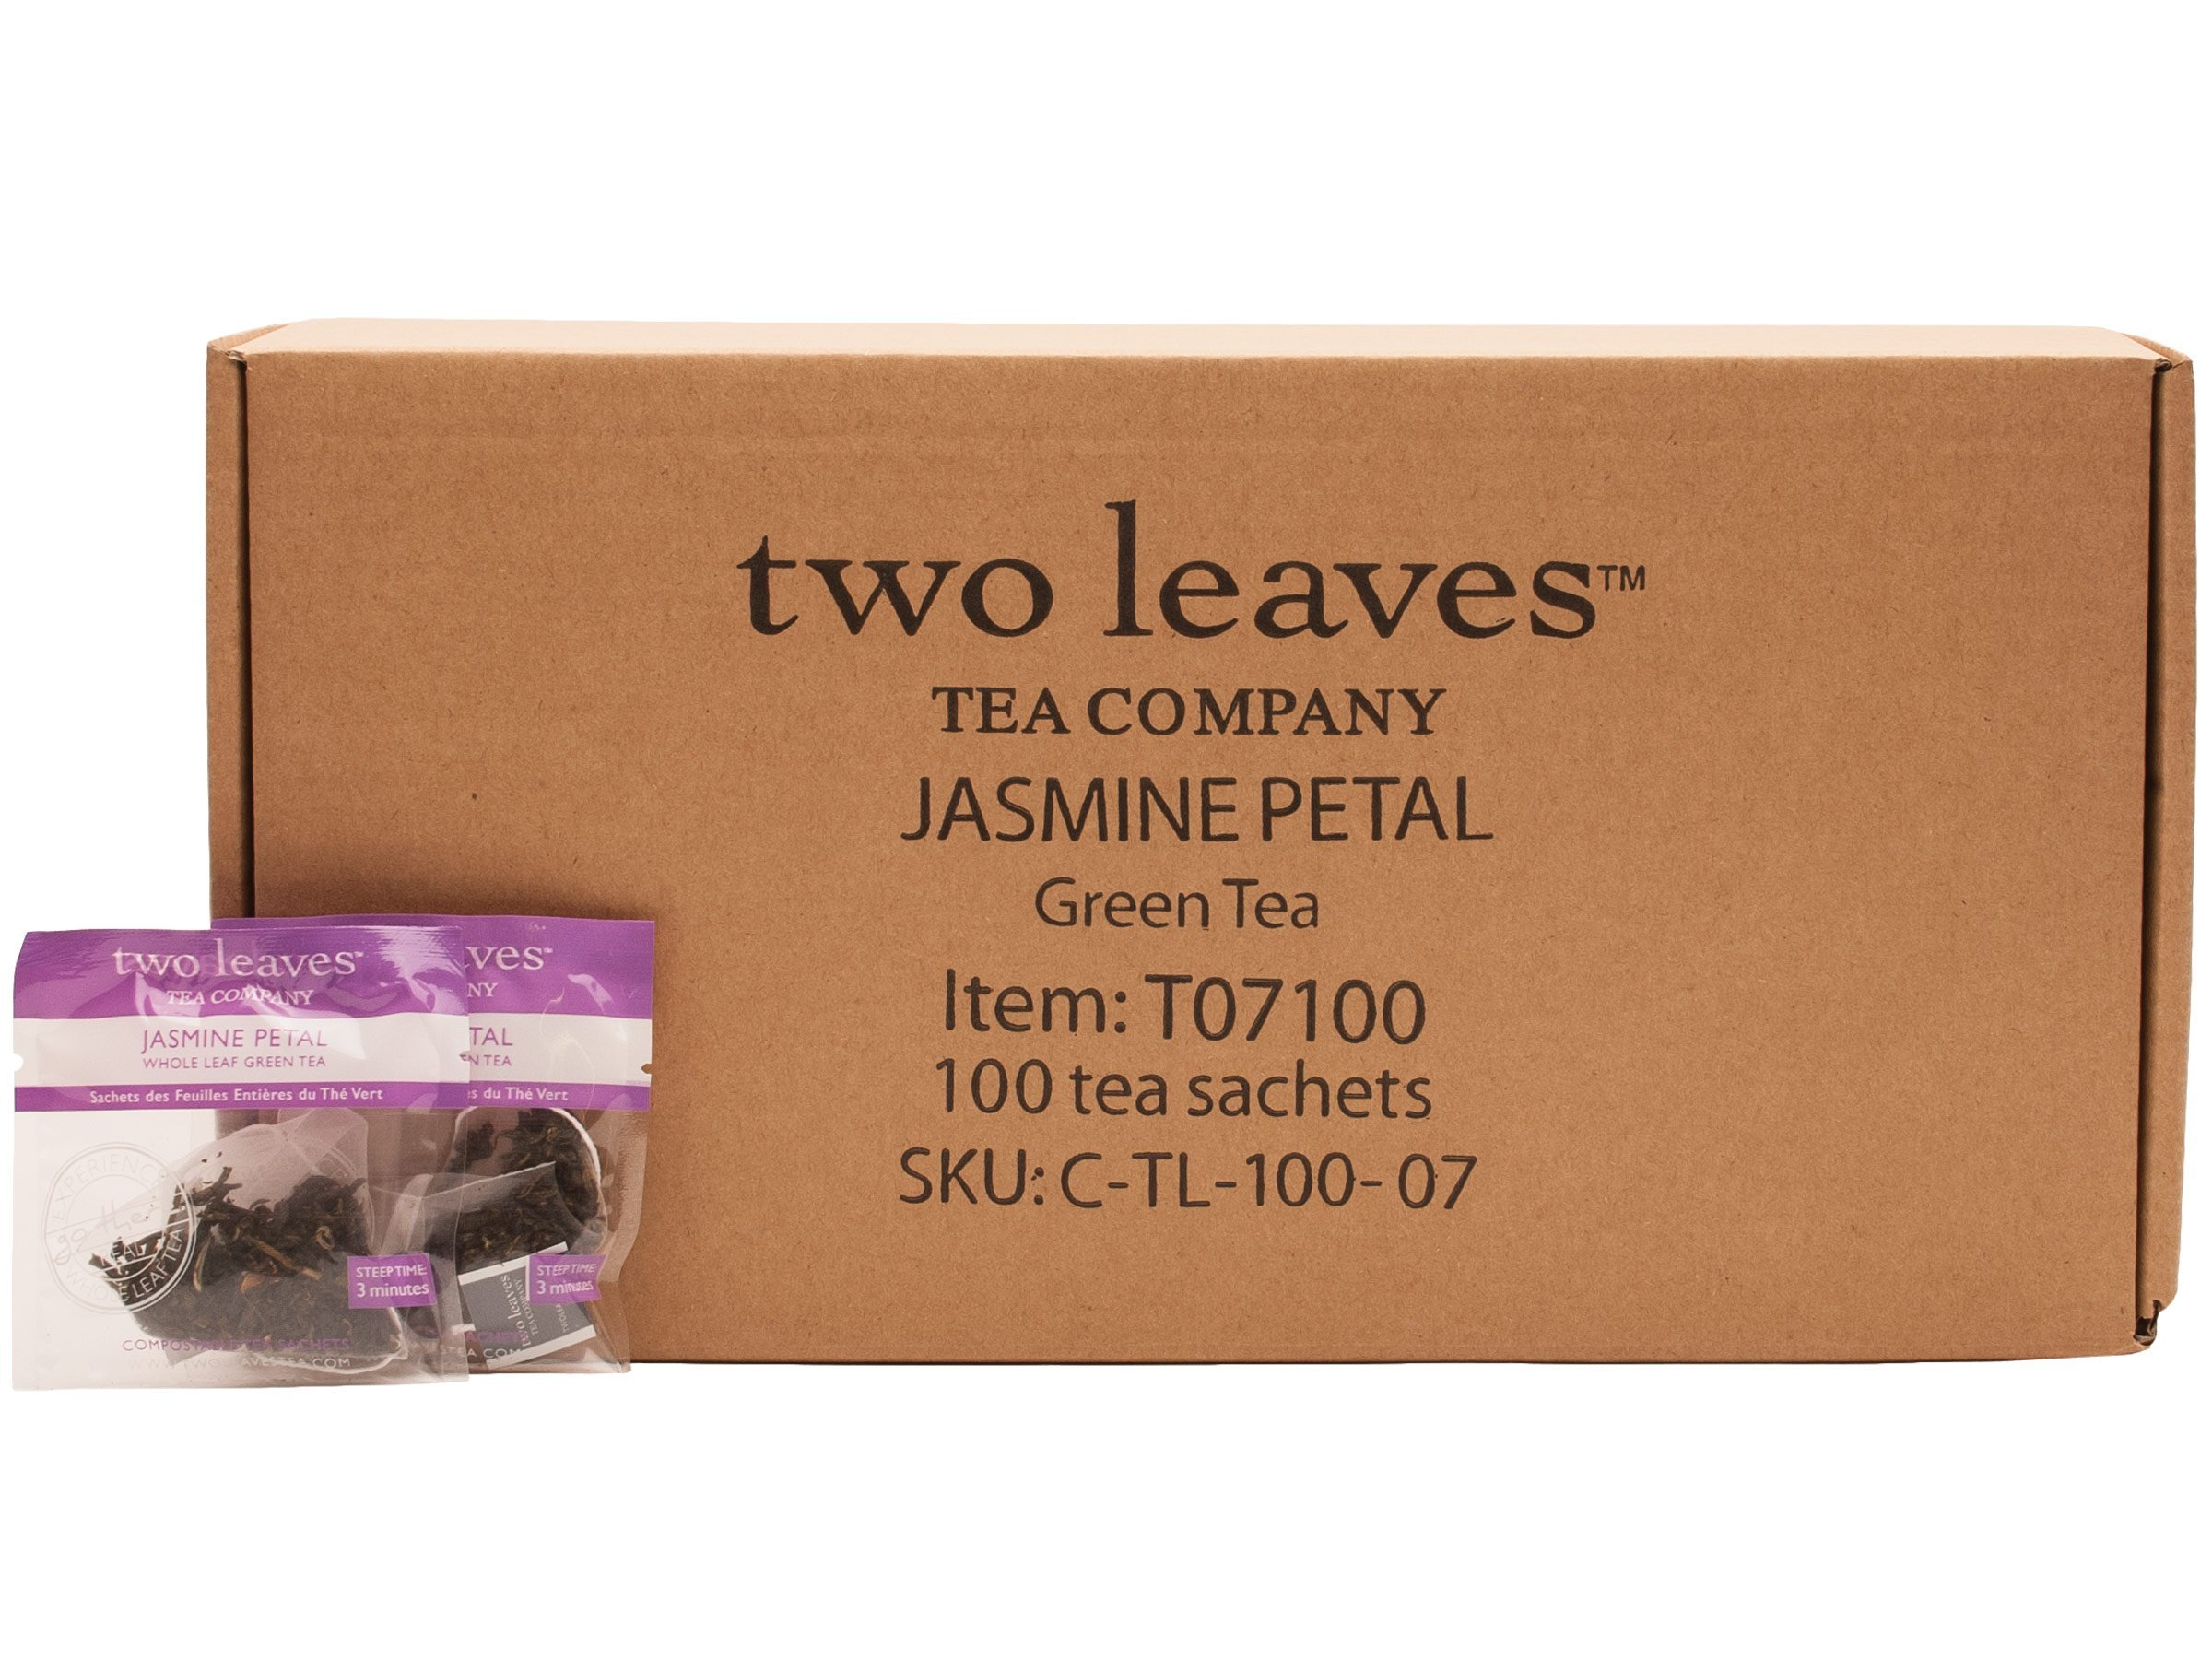 Two Leaves and a Bud Jasmine Petal Green Tea Bags, 100 Count, Whole Leaf Moderate Caffeine Green Tea in Pyramid Sachet Bags, Delicious Hot or Iced with Milk, Sugar, Honey or Plain by Two Leaves and a Bud